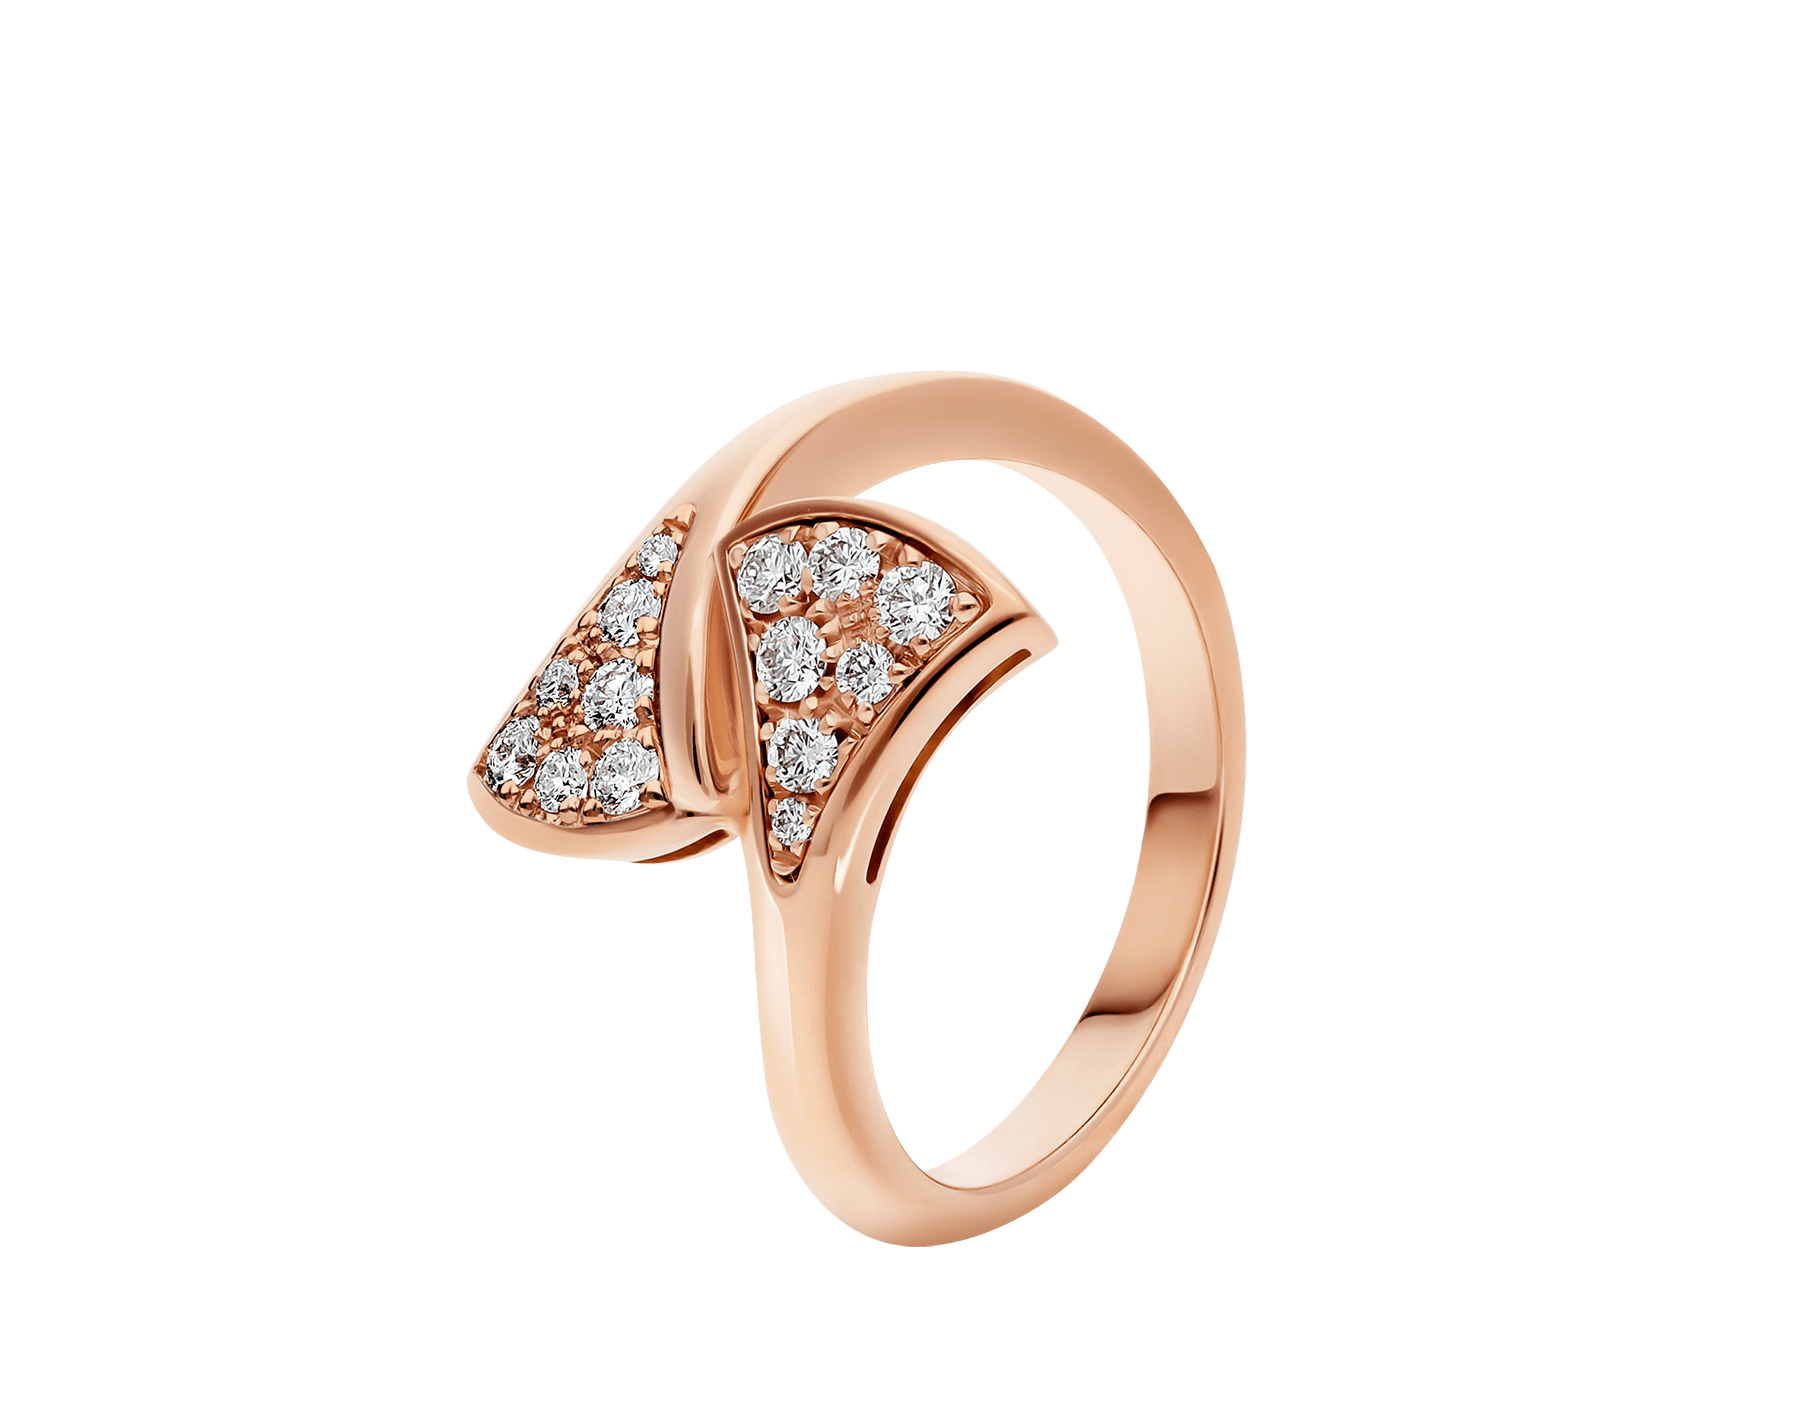 DIVAS' DREAM 18 kt rose gold ring set with pavé diamonds. AN858647 image 1